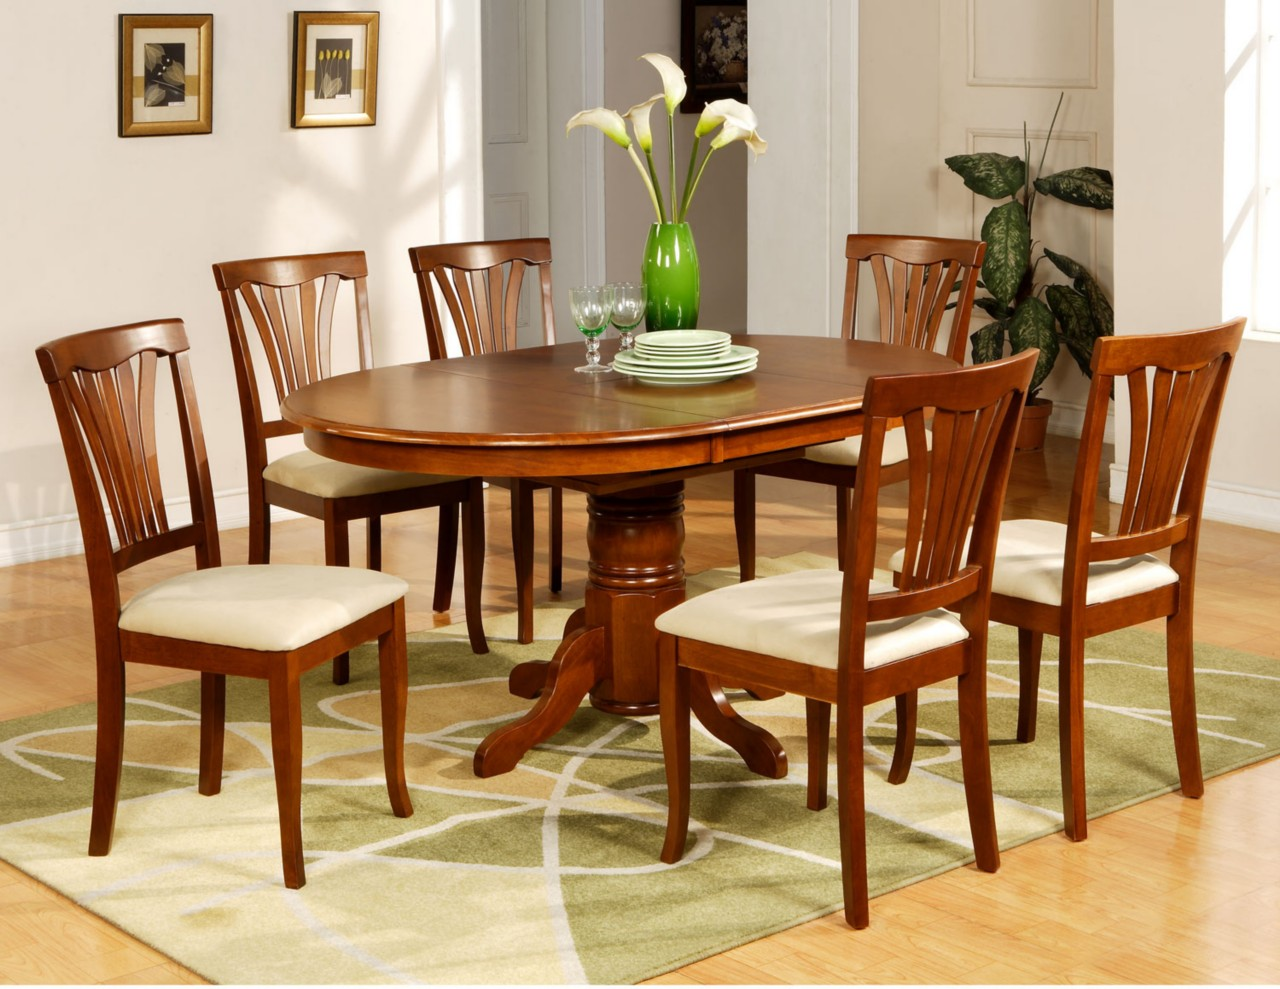 7 pc avon oval dinette kitchen dining room table with 6 for Dining table set designs